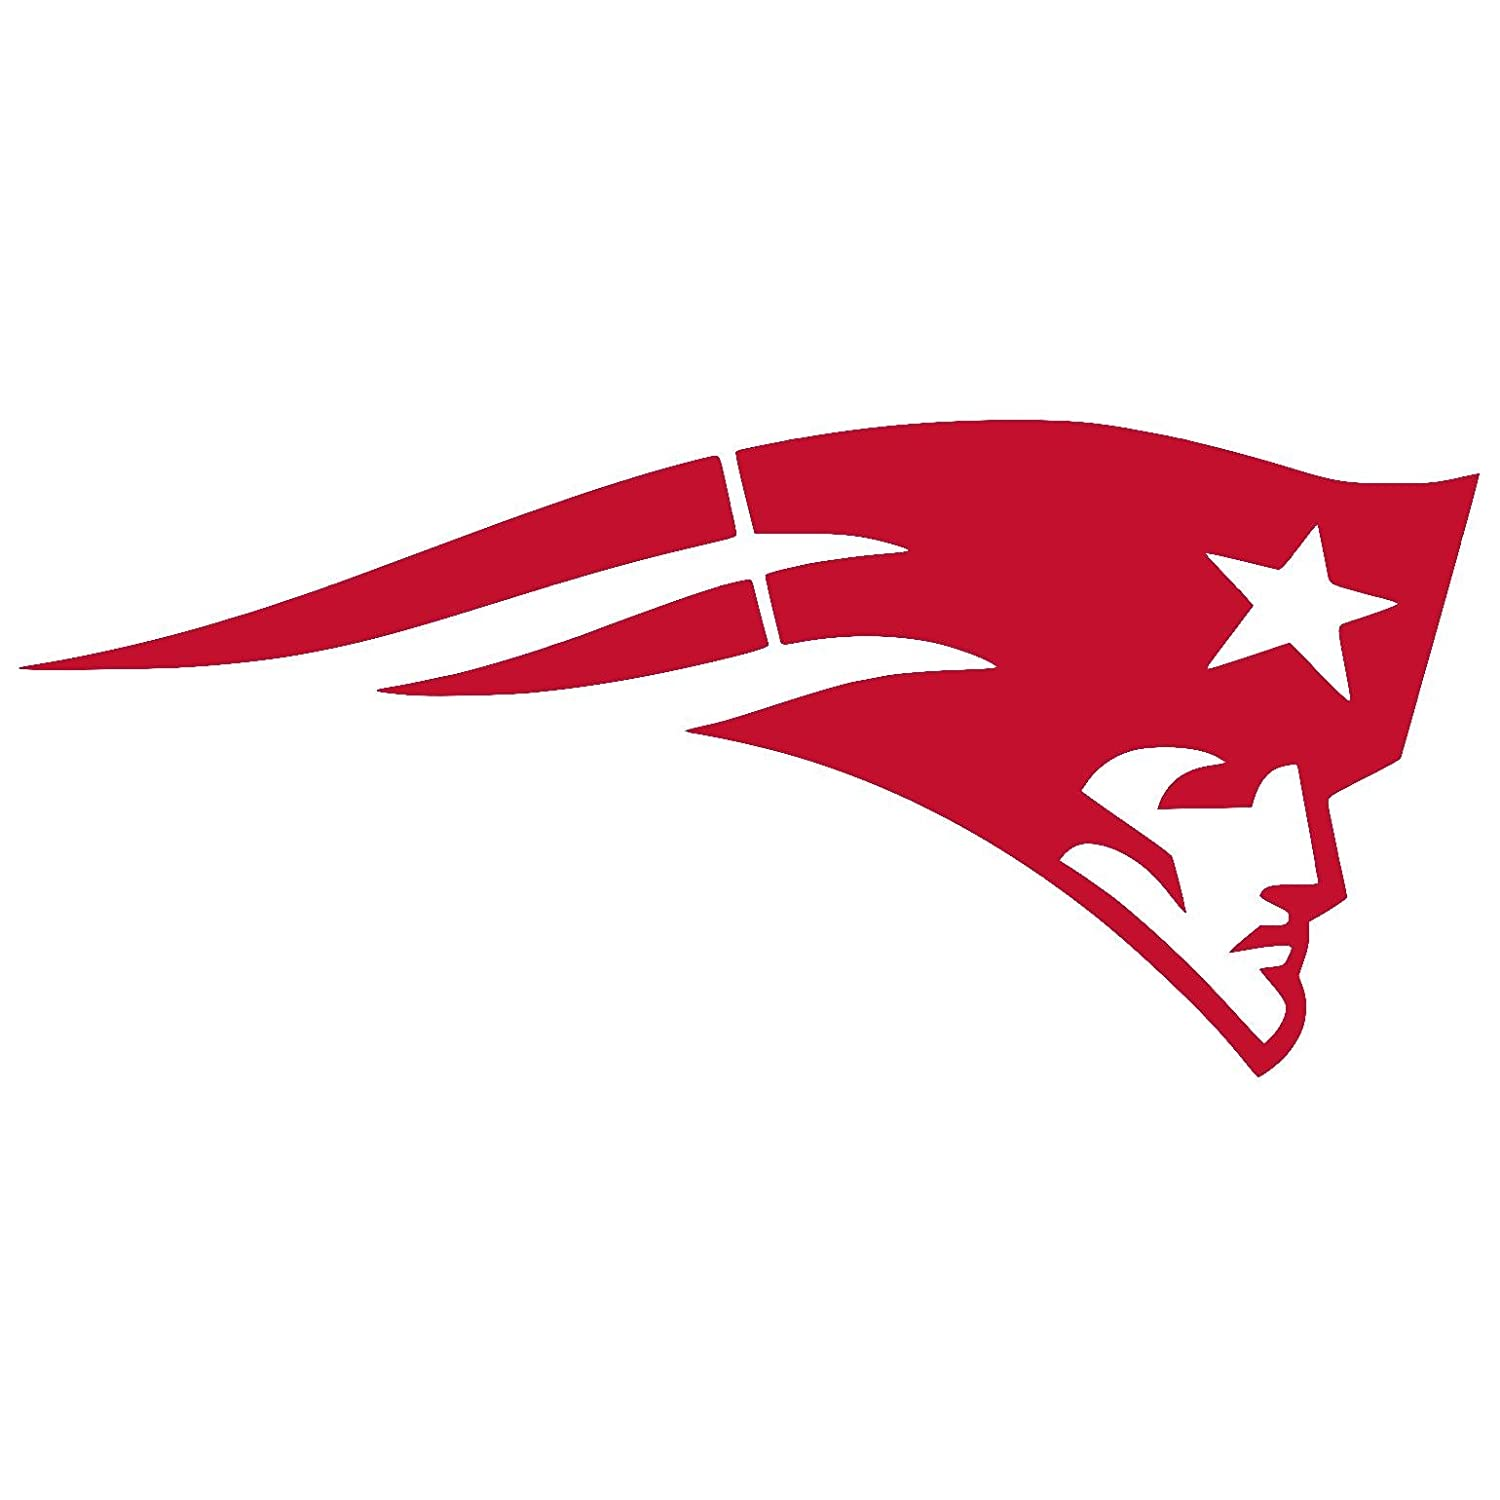 NEW ENGLAND PATRIOTS vinyl Sticker Decal 2 x 0.9, Real Red